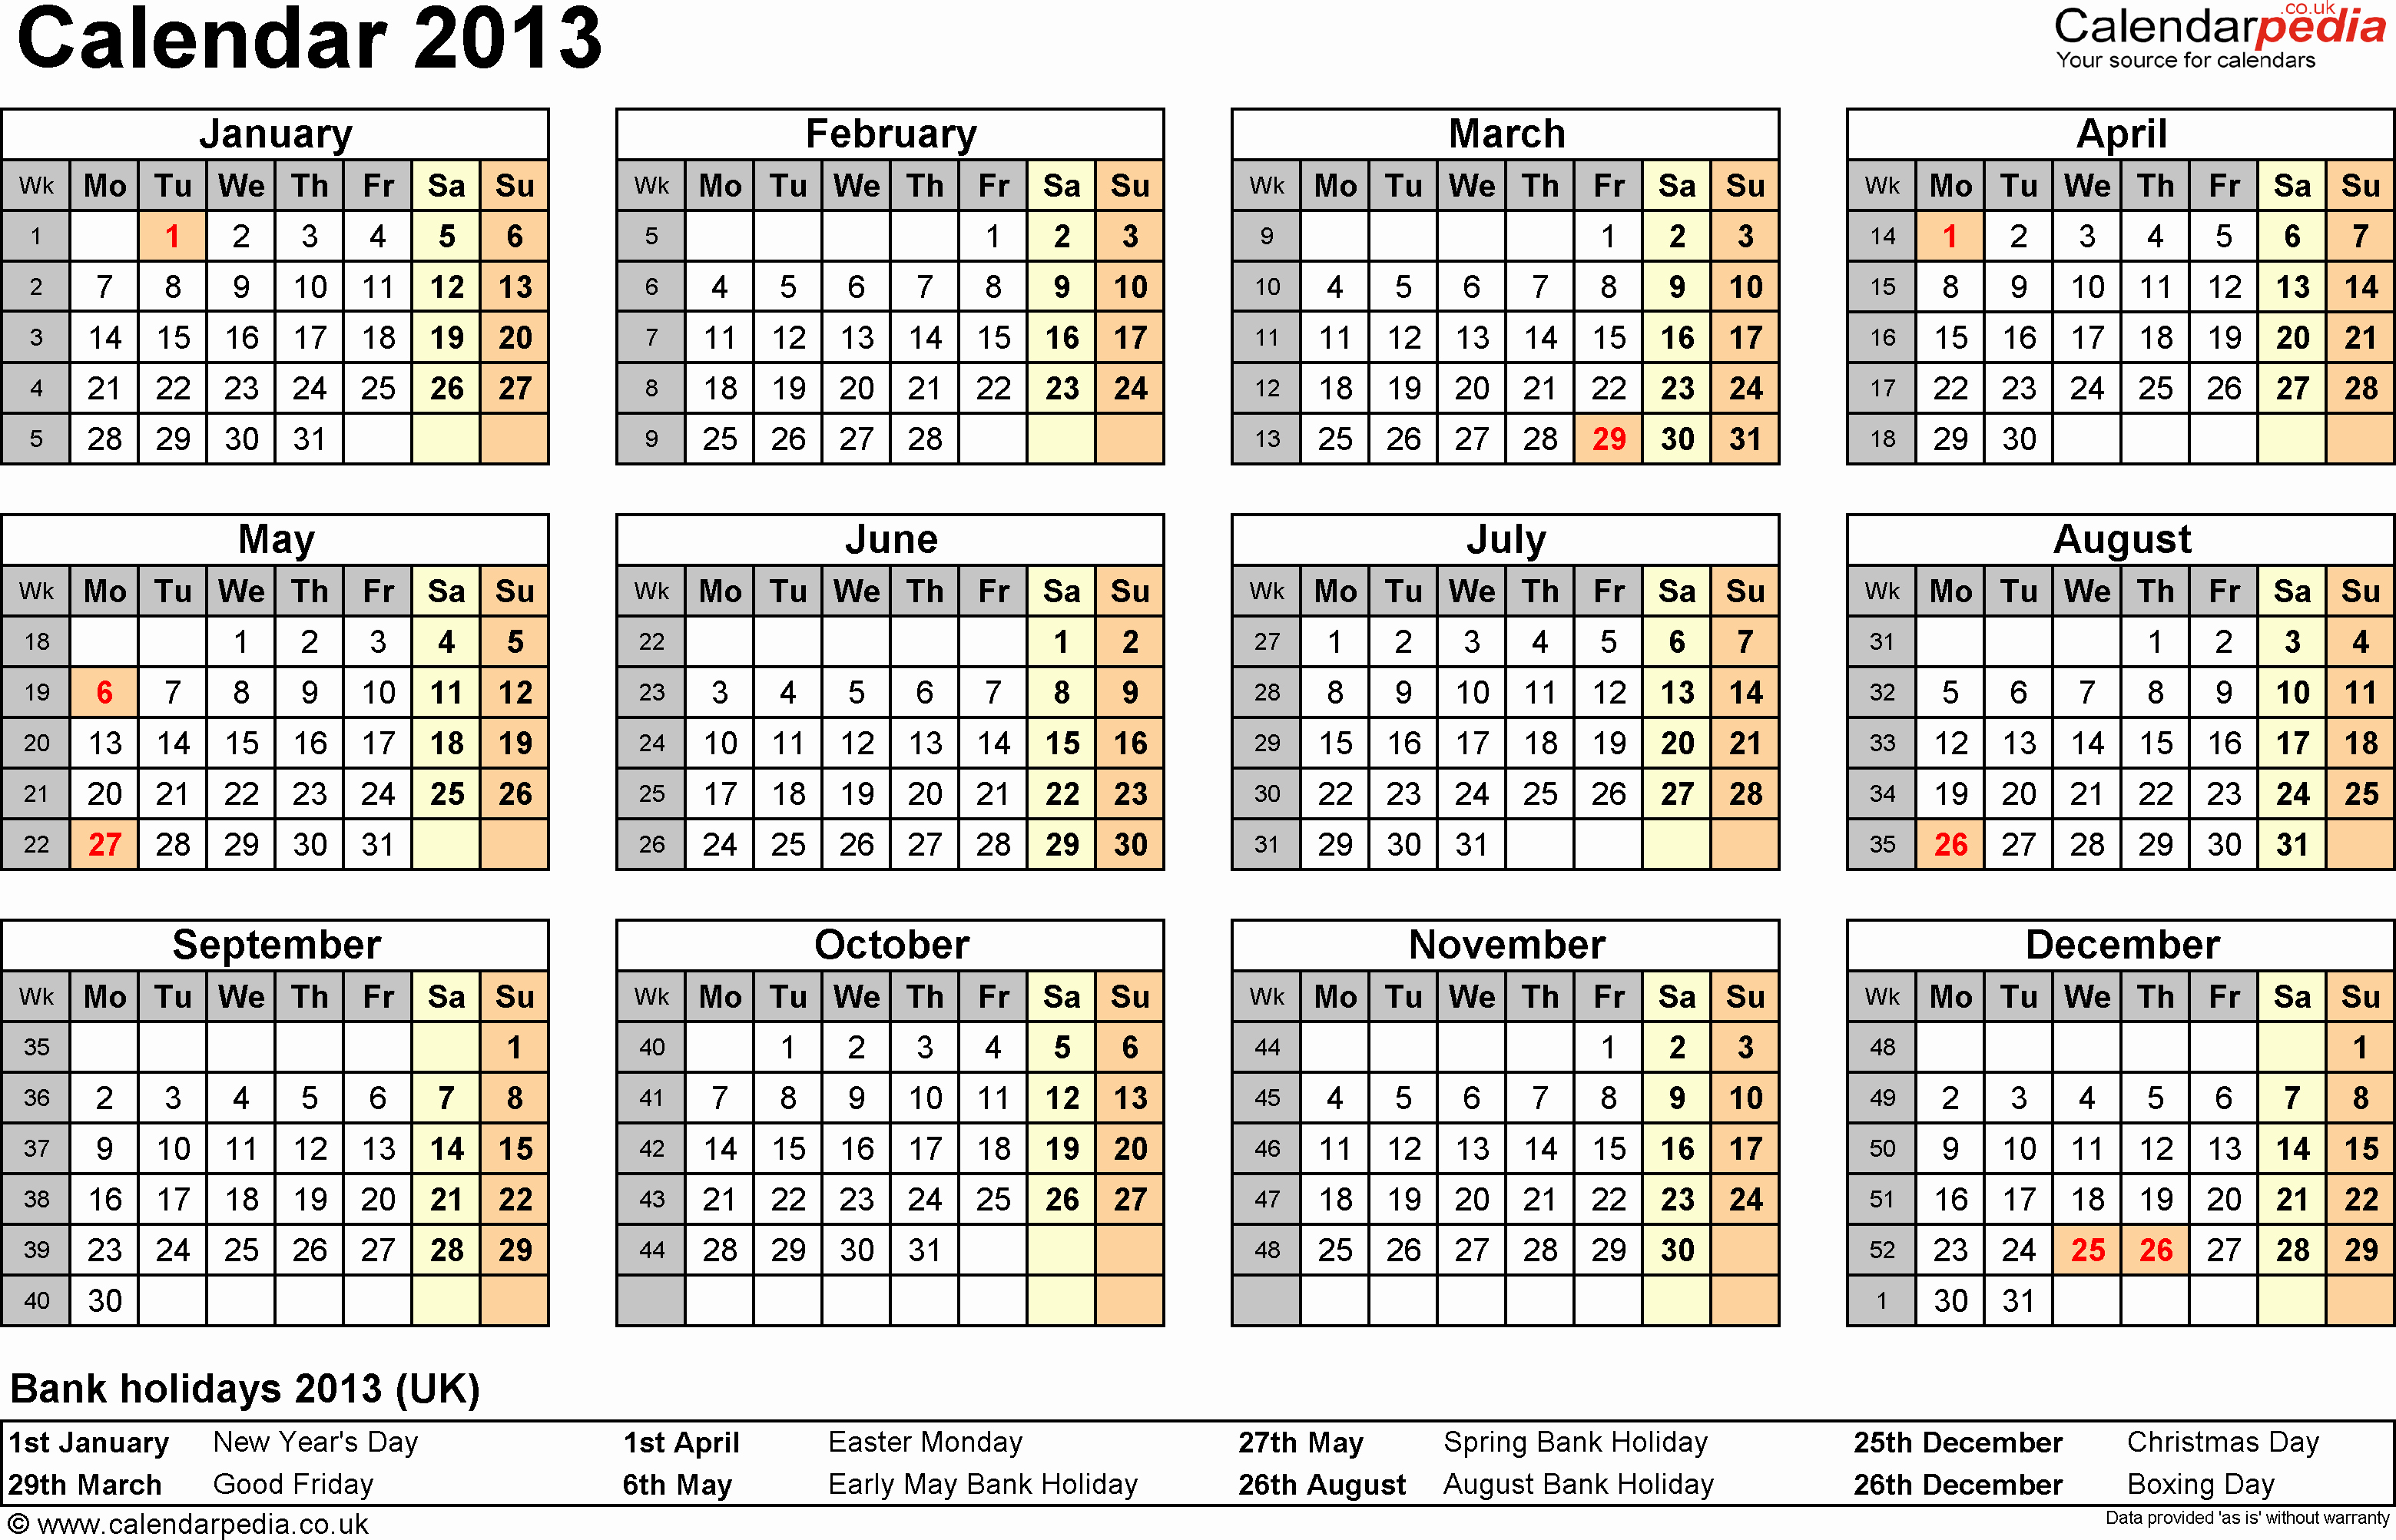 2013 Calendar Printable One Page Elegant Calendar 2013 Uk as Word Templates In 12 Different Versions